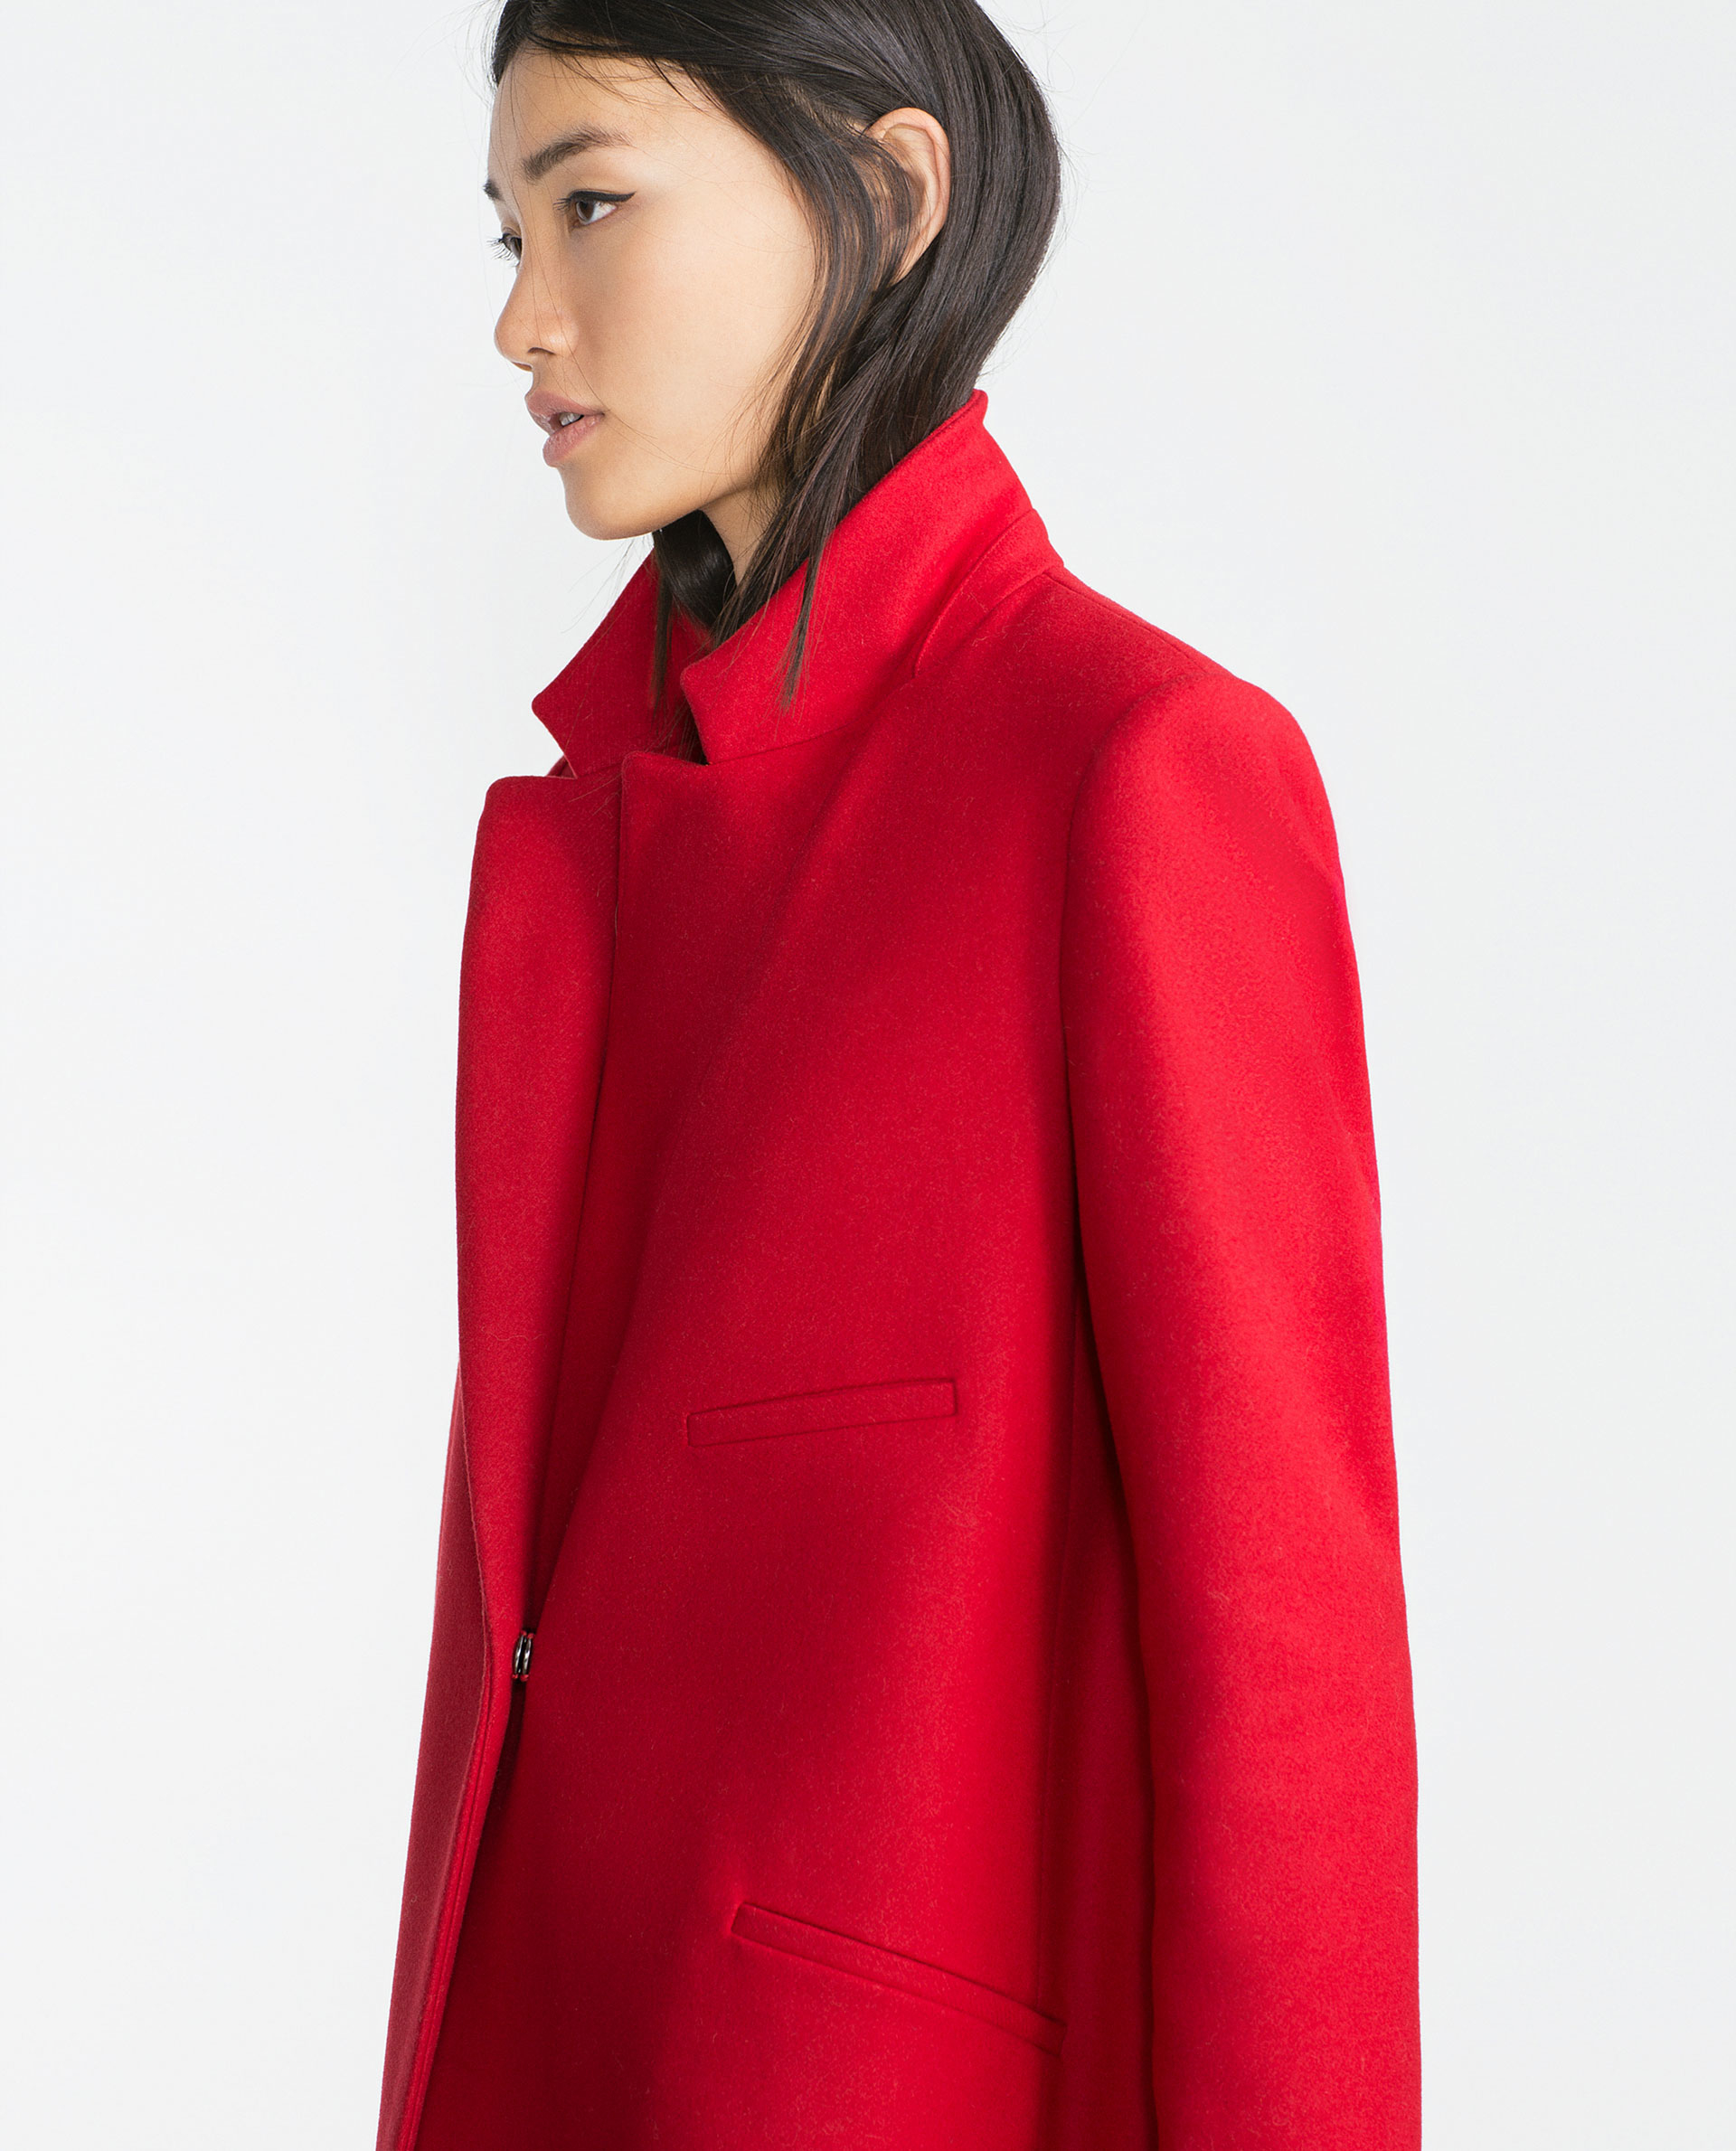 Zara Masculine Wool Coat in Red | Lyst